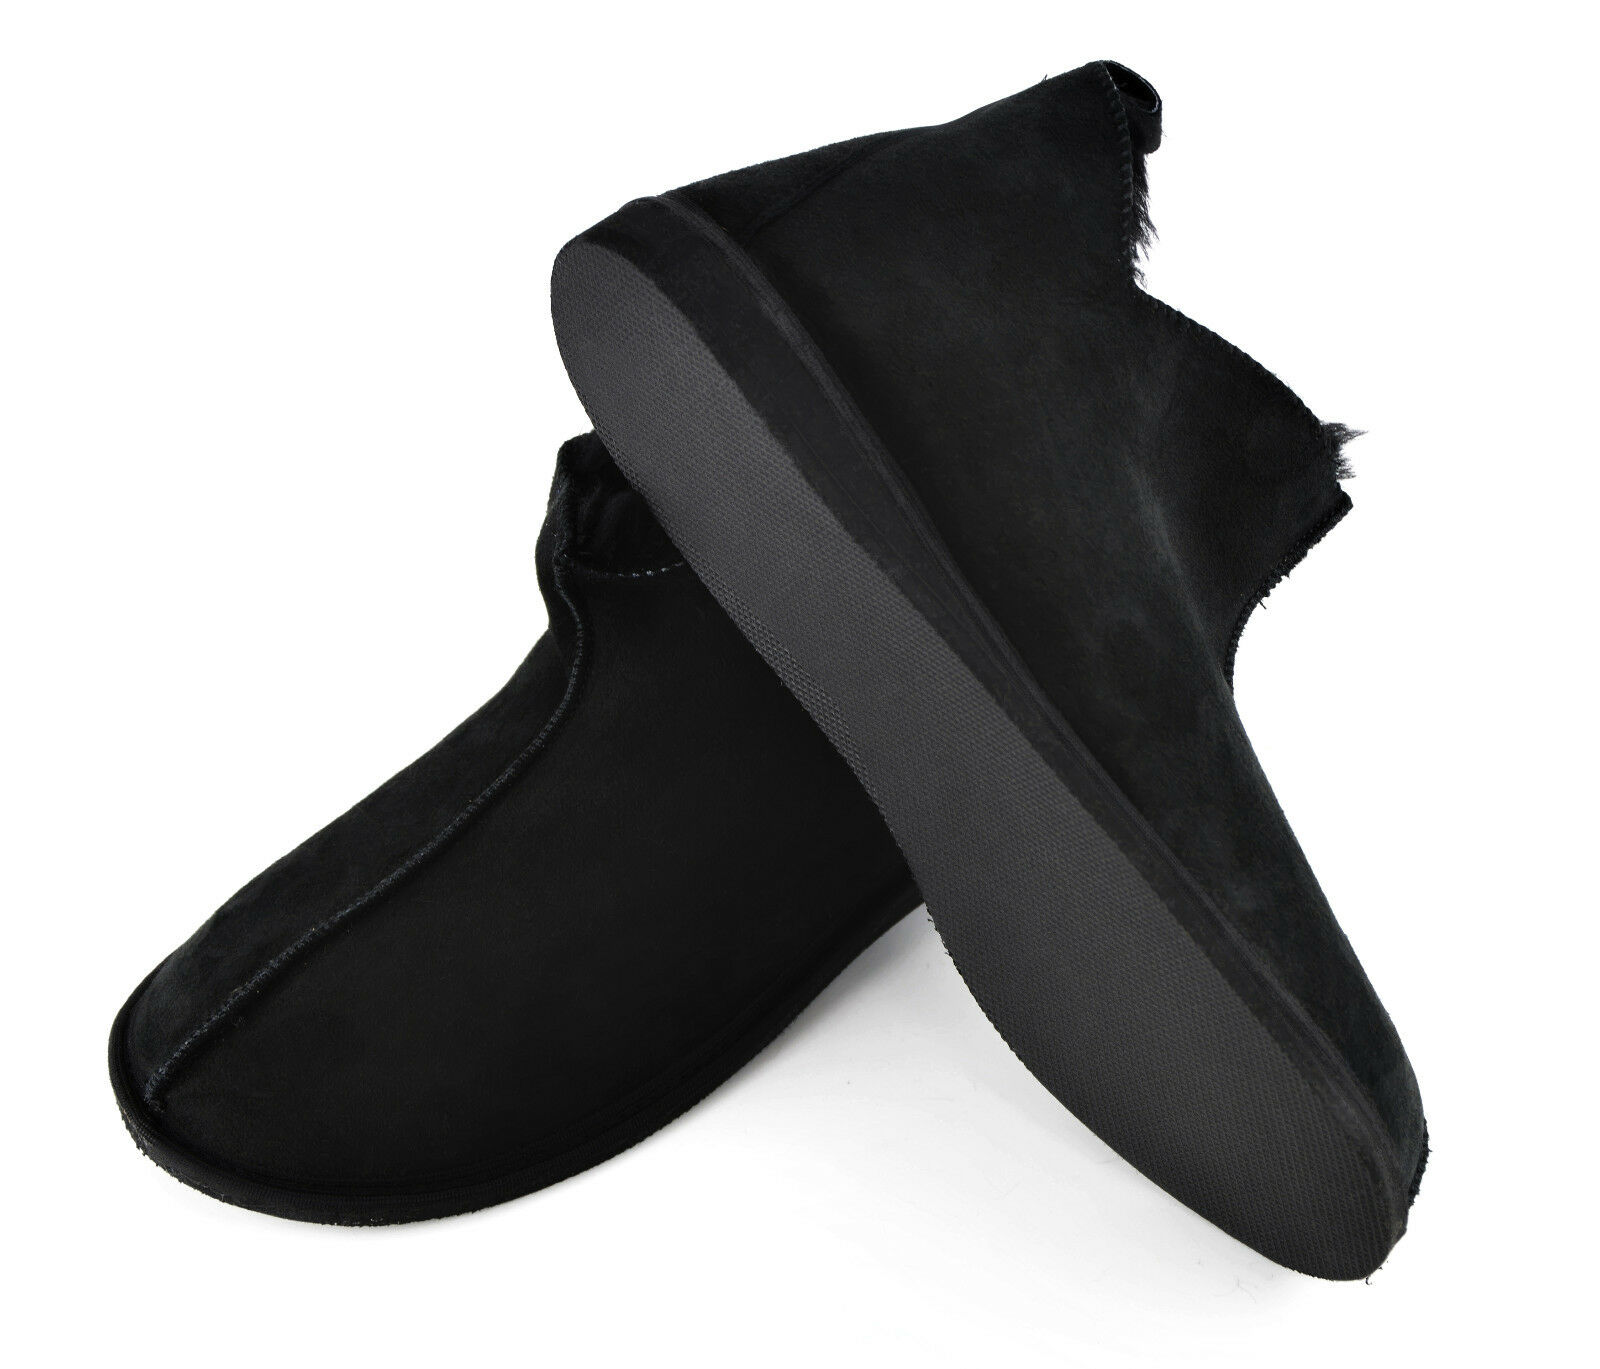 Sheepskin Moccasin Slippers - Lambskin House Schuhes Moccasin Sheepskin with sole,100% ECO - UNISEX e2f4ff